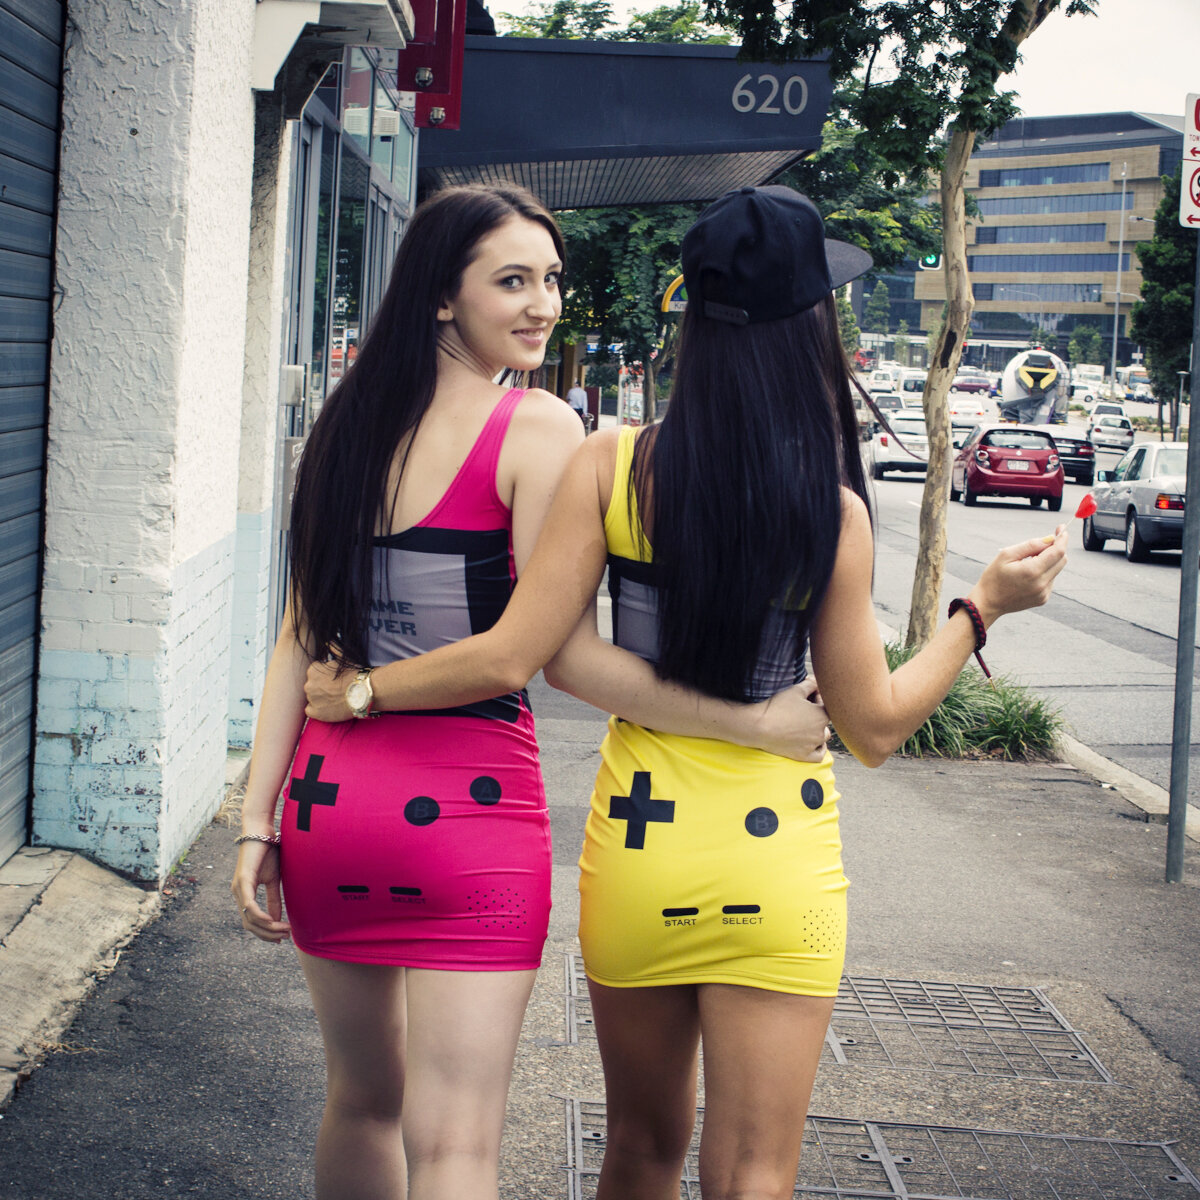 Twitter / BlackMilkTweets: Hey I don't think this pic ...